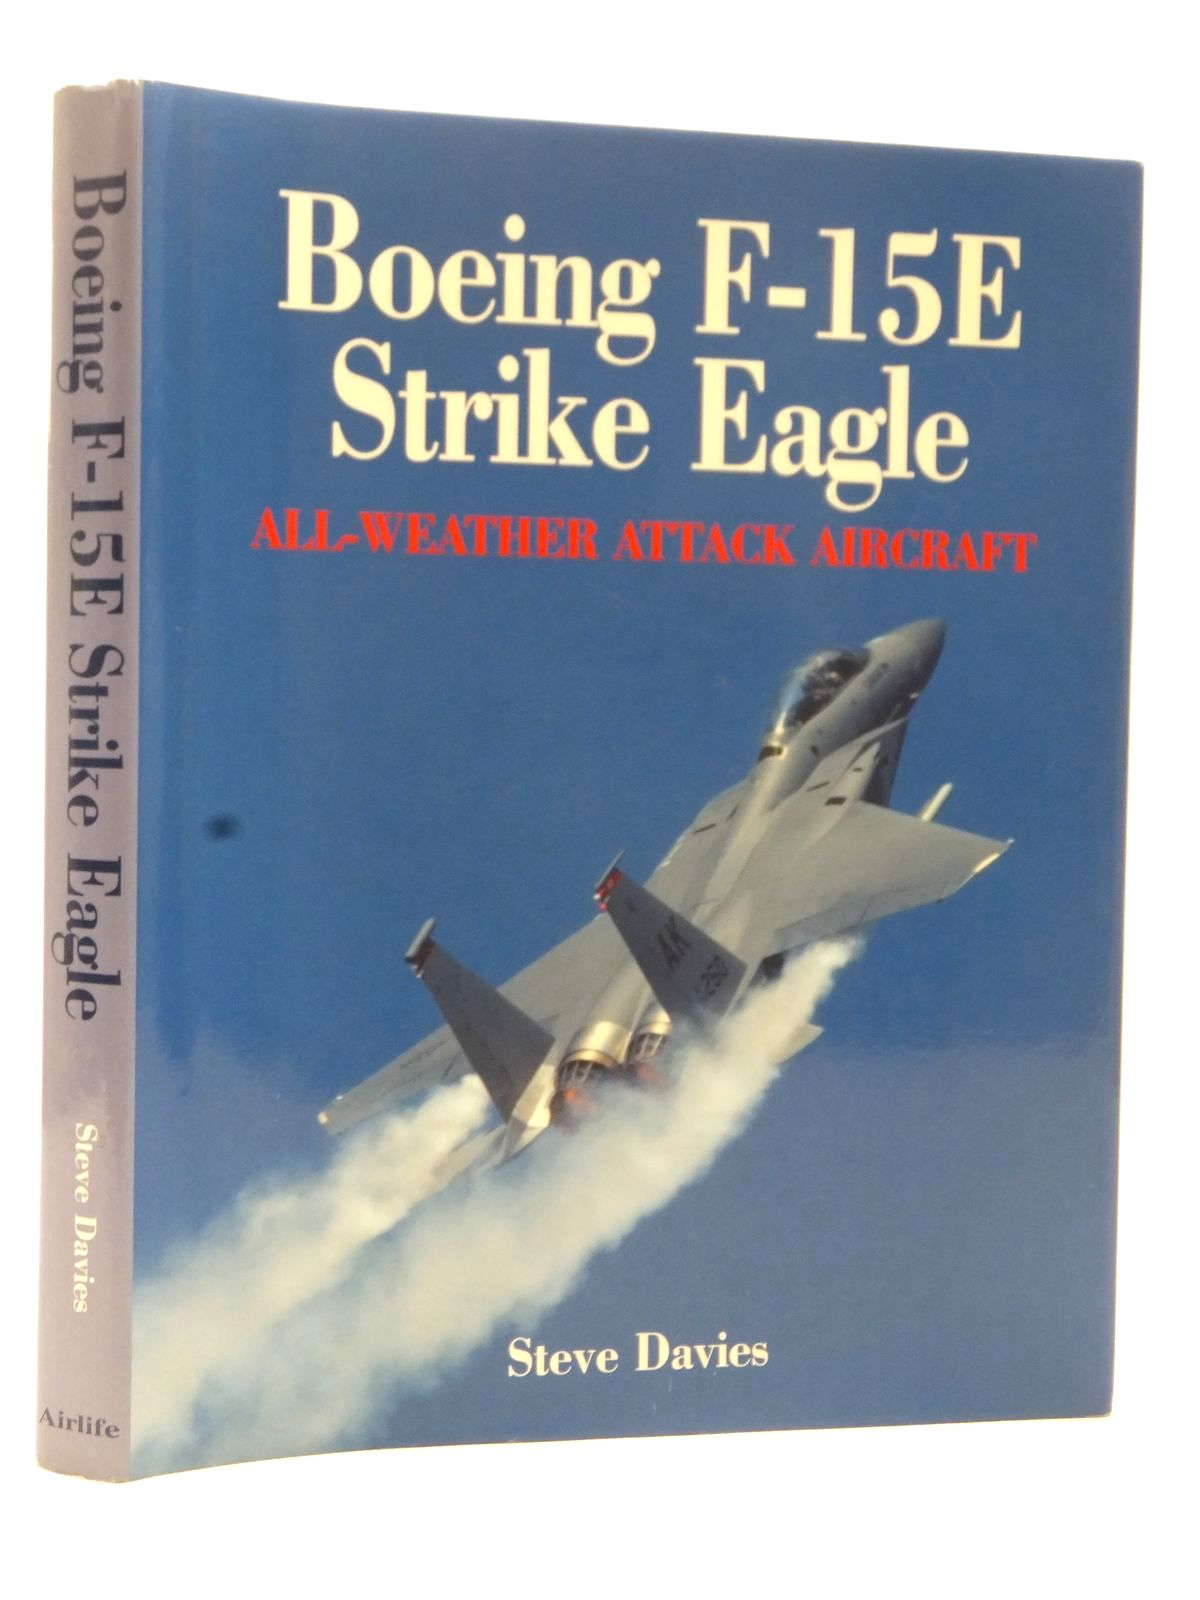 Photo of BOEING F-15E STRIKE EAGLE ALL-WEATHER ATTACK AIRCRAFT written by Davies, Steve published by Airlife (STOCK CODE: 2124040)  for sale by Stella & Rose's Books